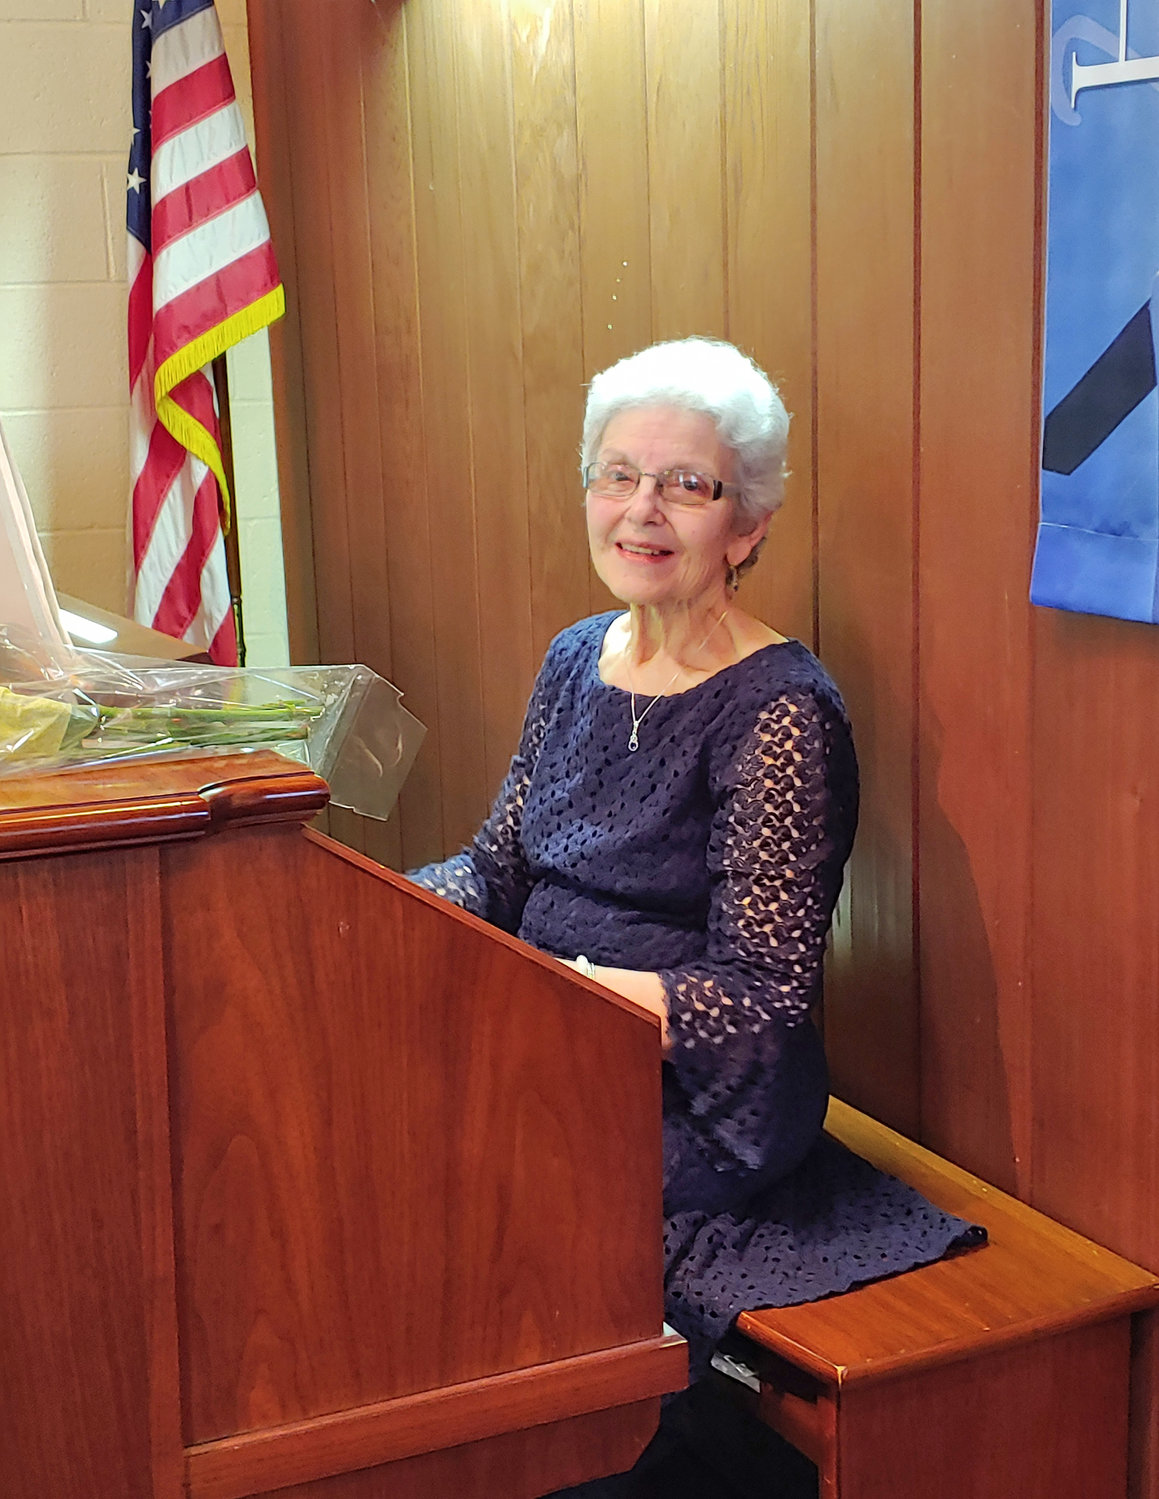 LEAVING ON HIGH NOTE — Molly Pritchard, retiring after 25 years as Delta United Methodist Church's music director and organist, sits at the organ at the church's April 28 service.